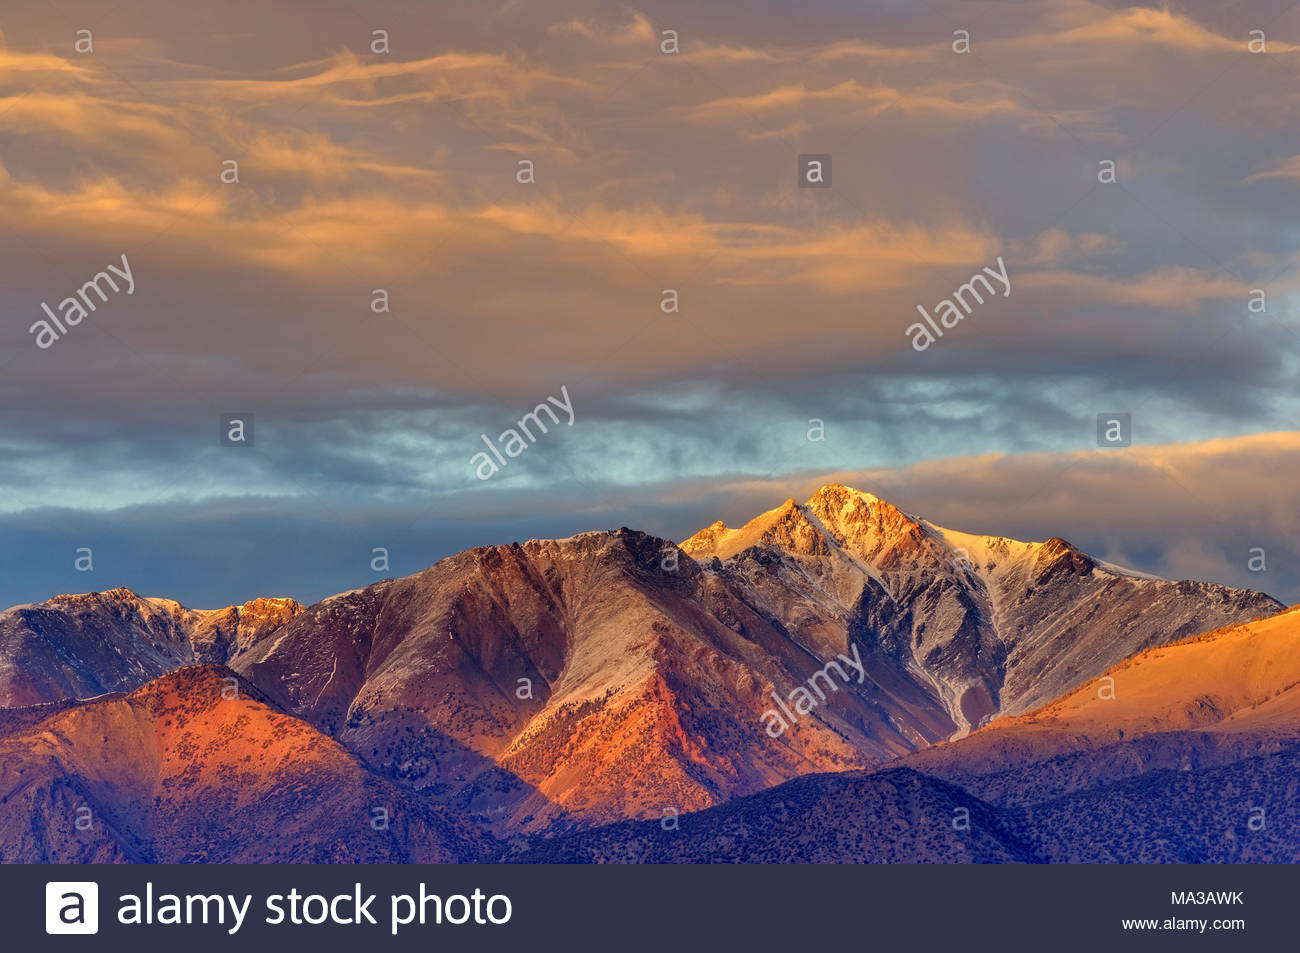 White Mountain aus der vulkanischen Hochebenen, Inyo National Forest, Inyo County, Caifornia Stockbild